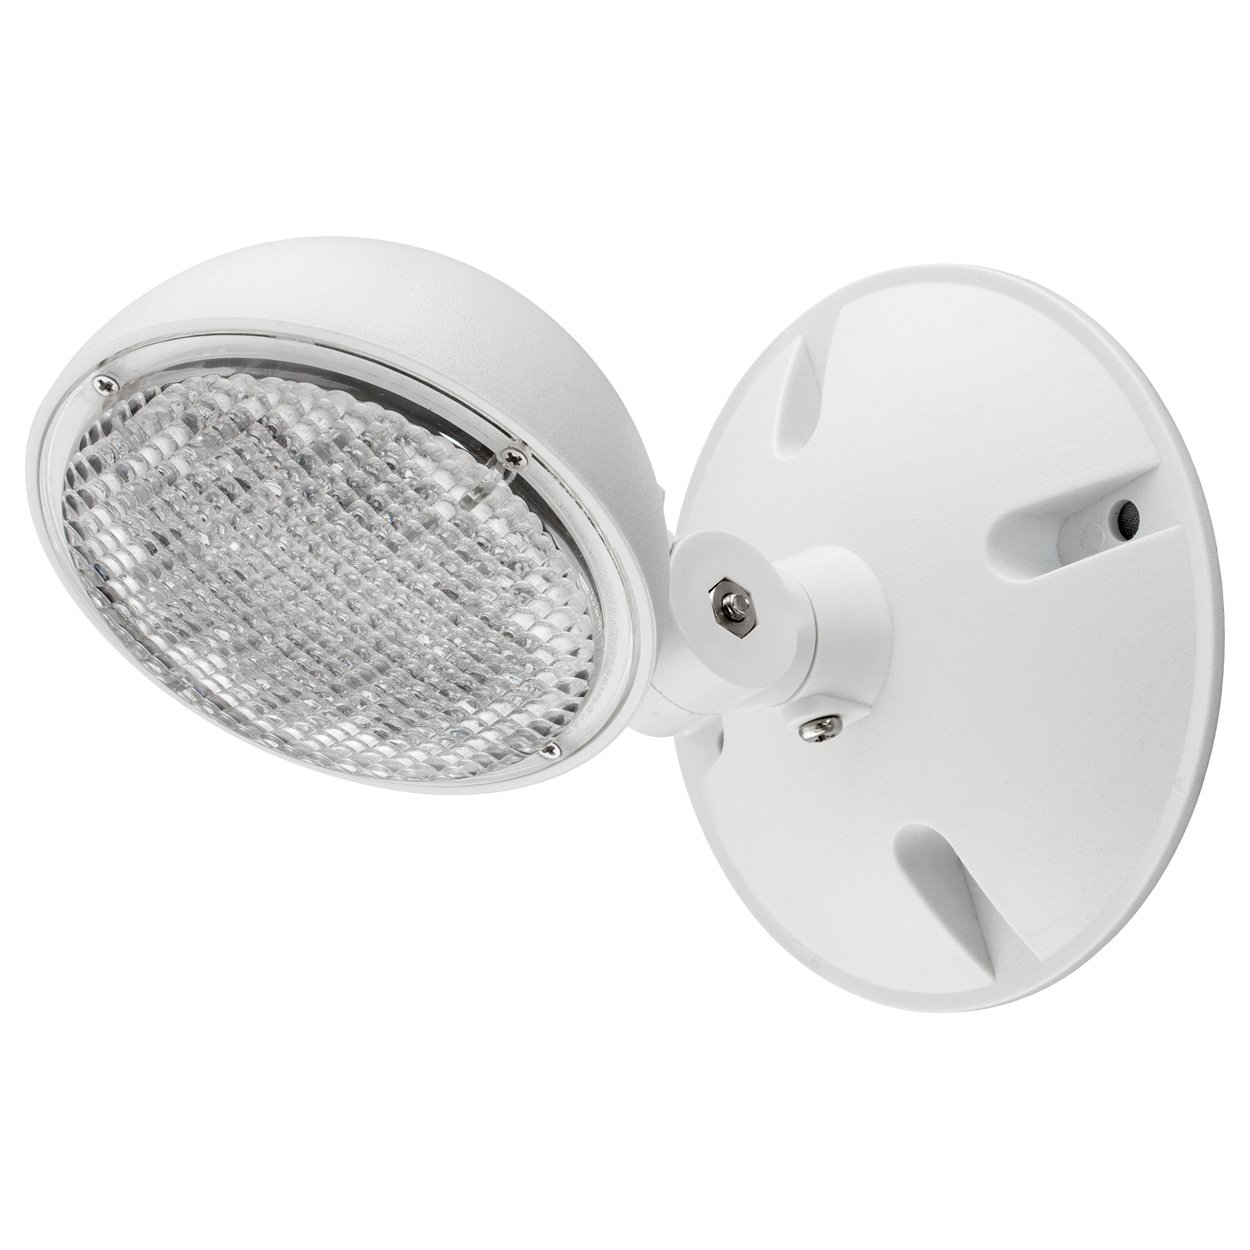 Compass CORS Hubbell Lighting LED Single Head Emergency Light - Commercial Emergency Light Fixtures - Amazon.com  sc 1 st  Amazon.com & Compass CORS Hubbell Lighting LED Single Head Emergency Light ... azcodes.com